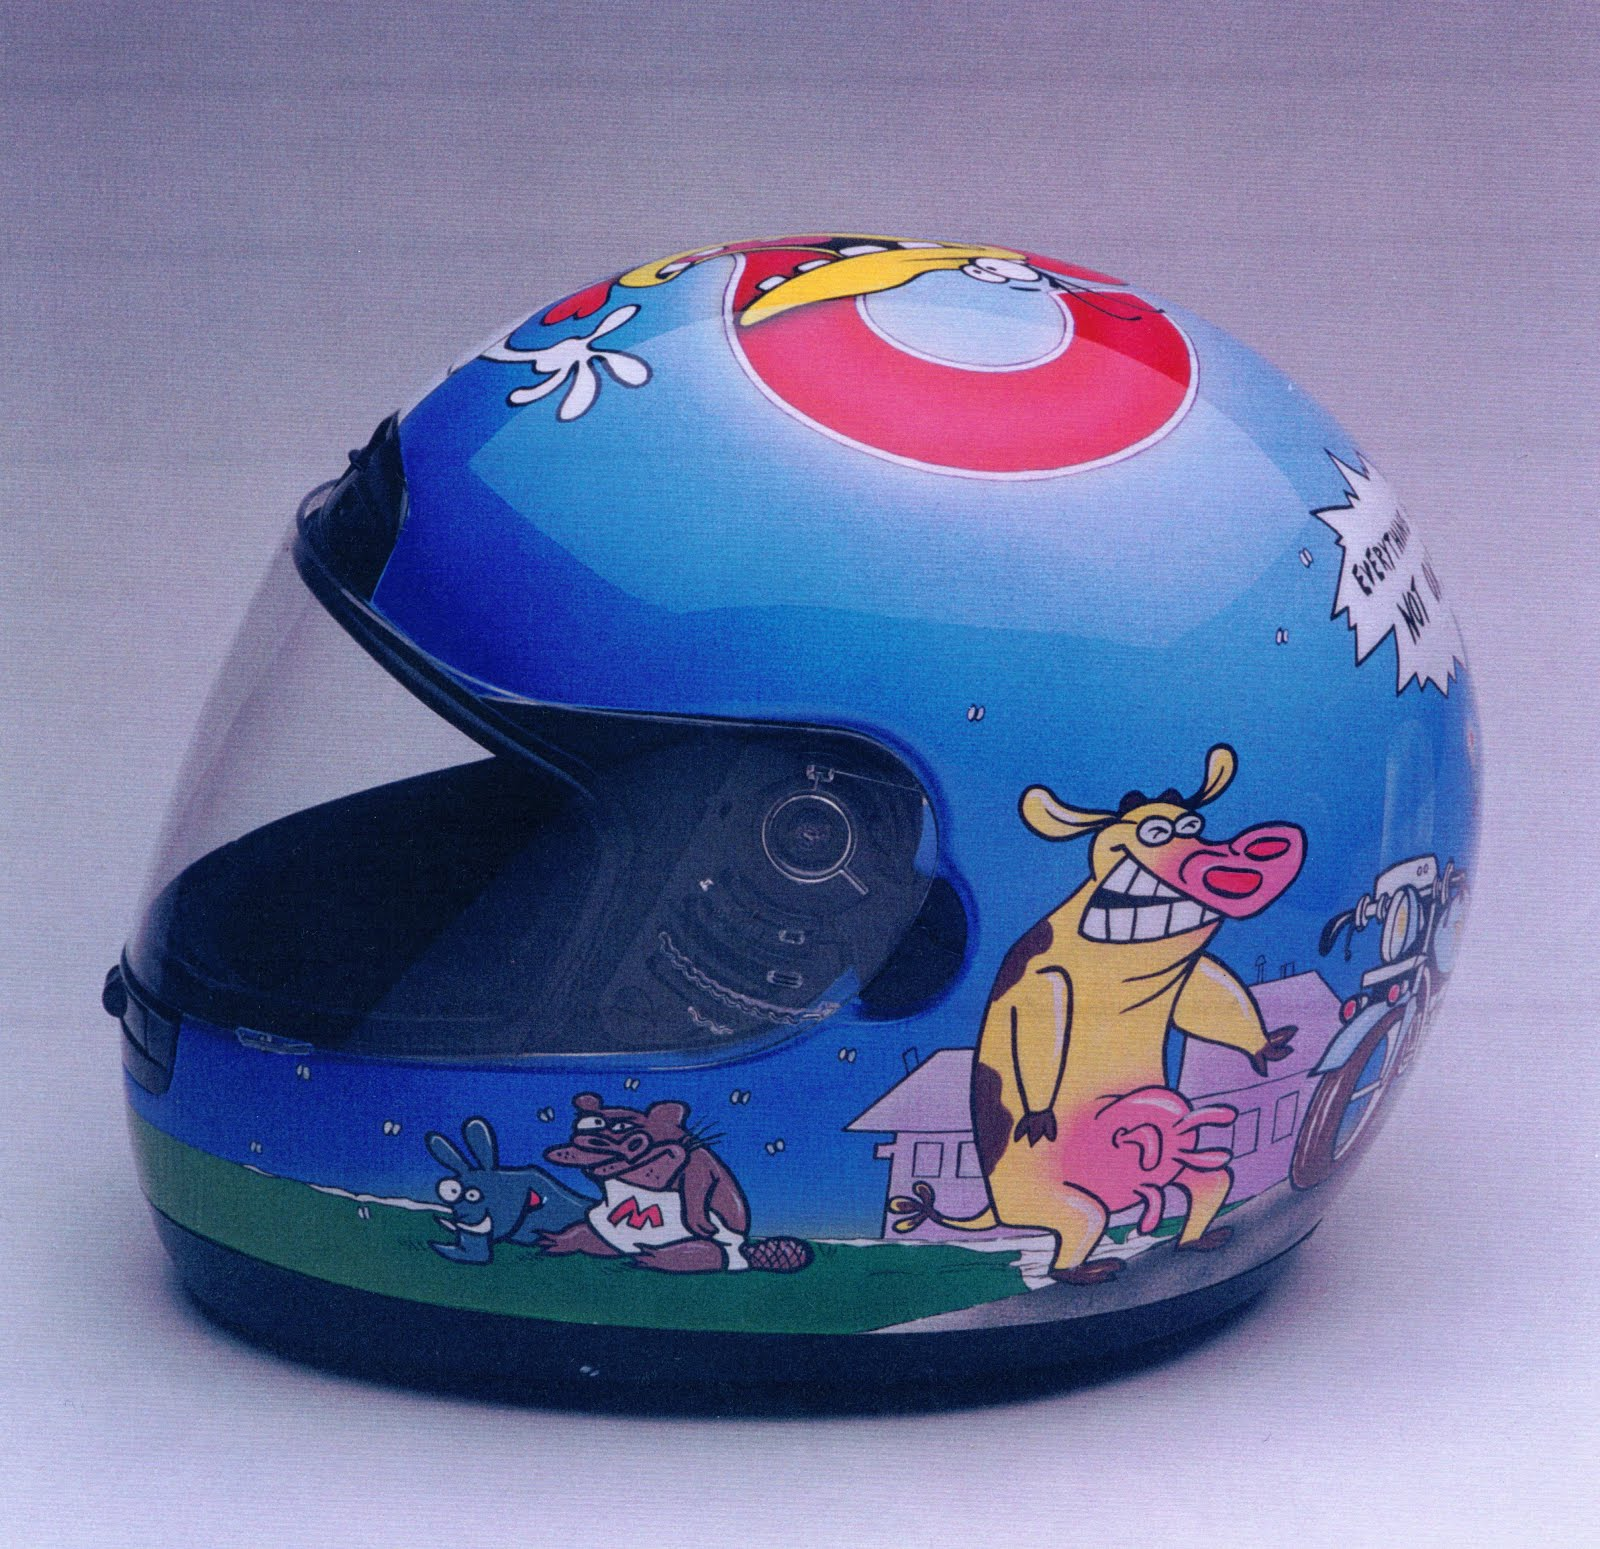 Cow & Chicken Helmet